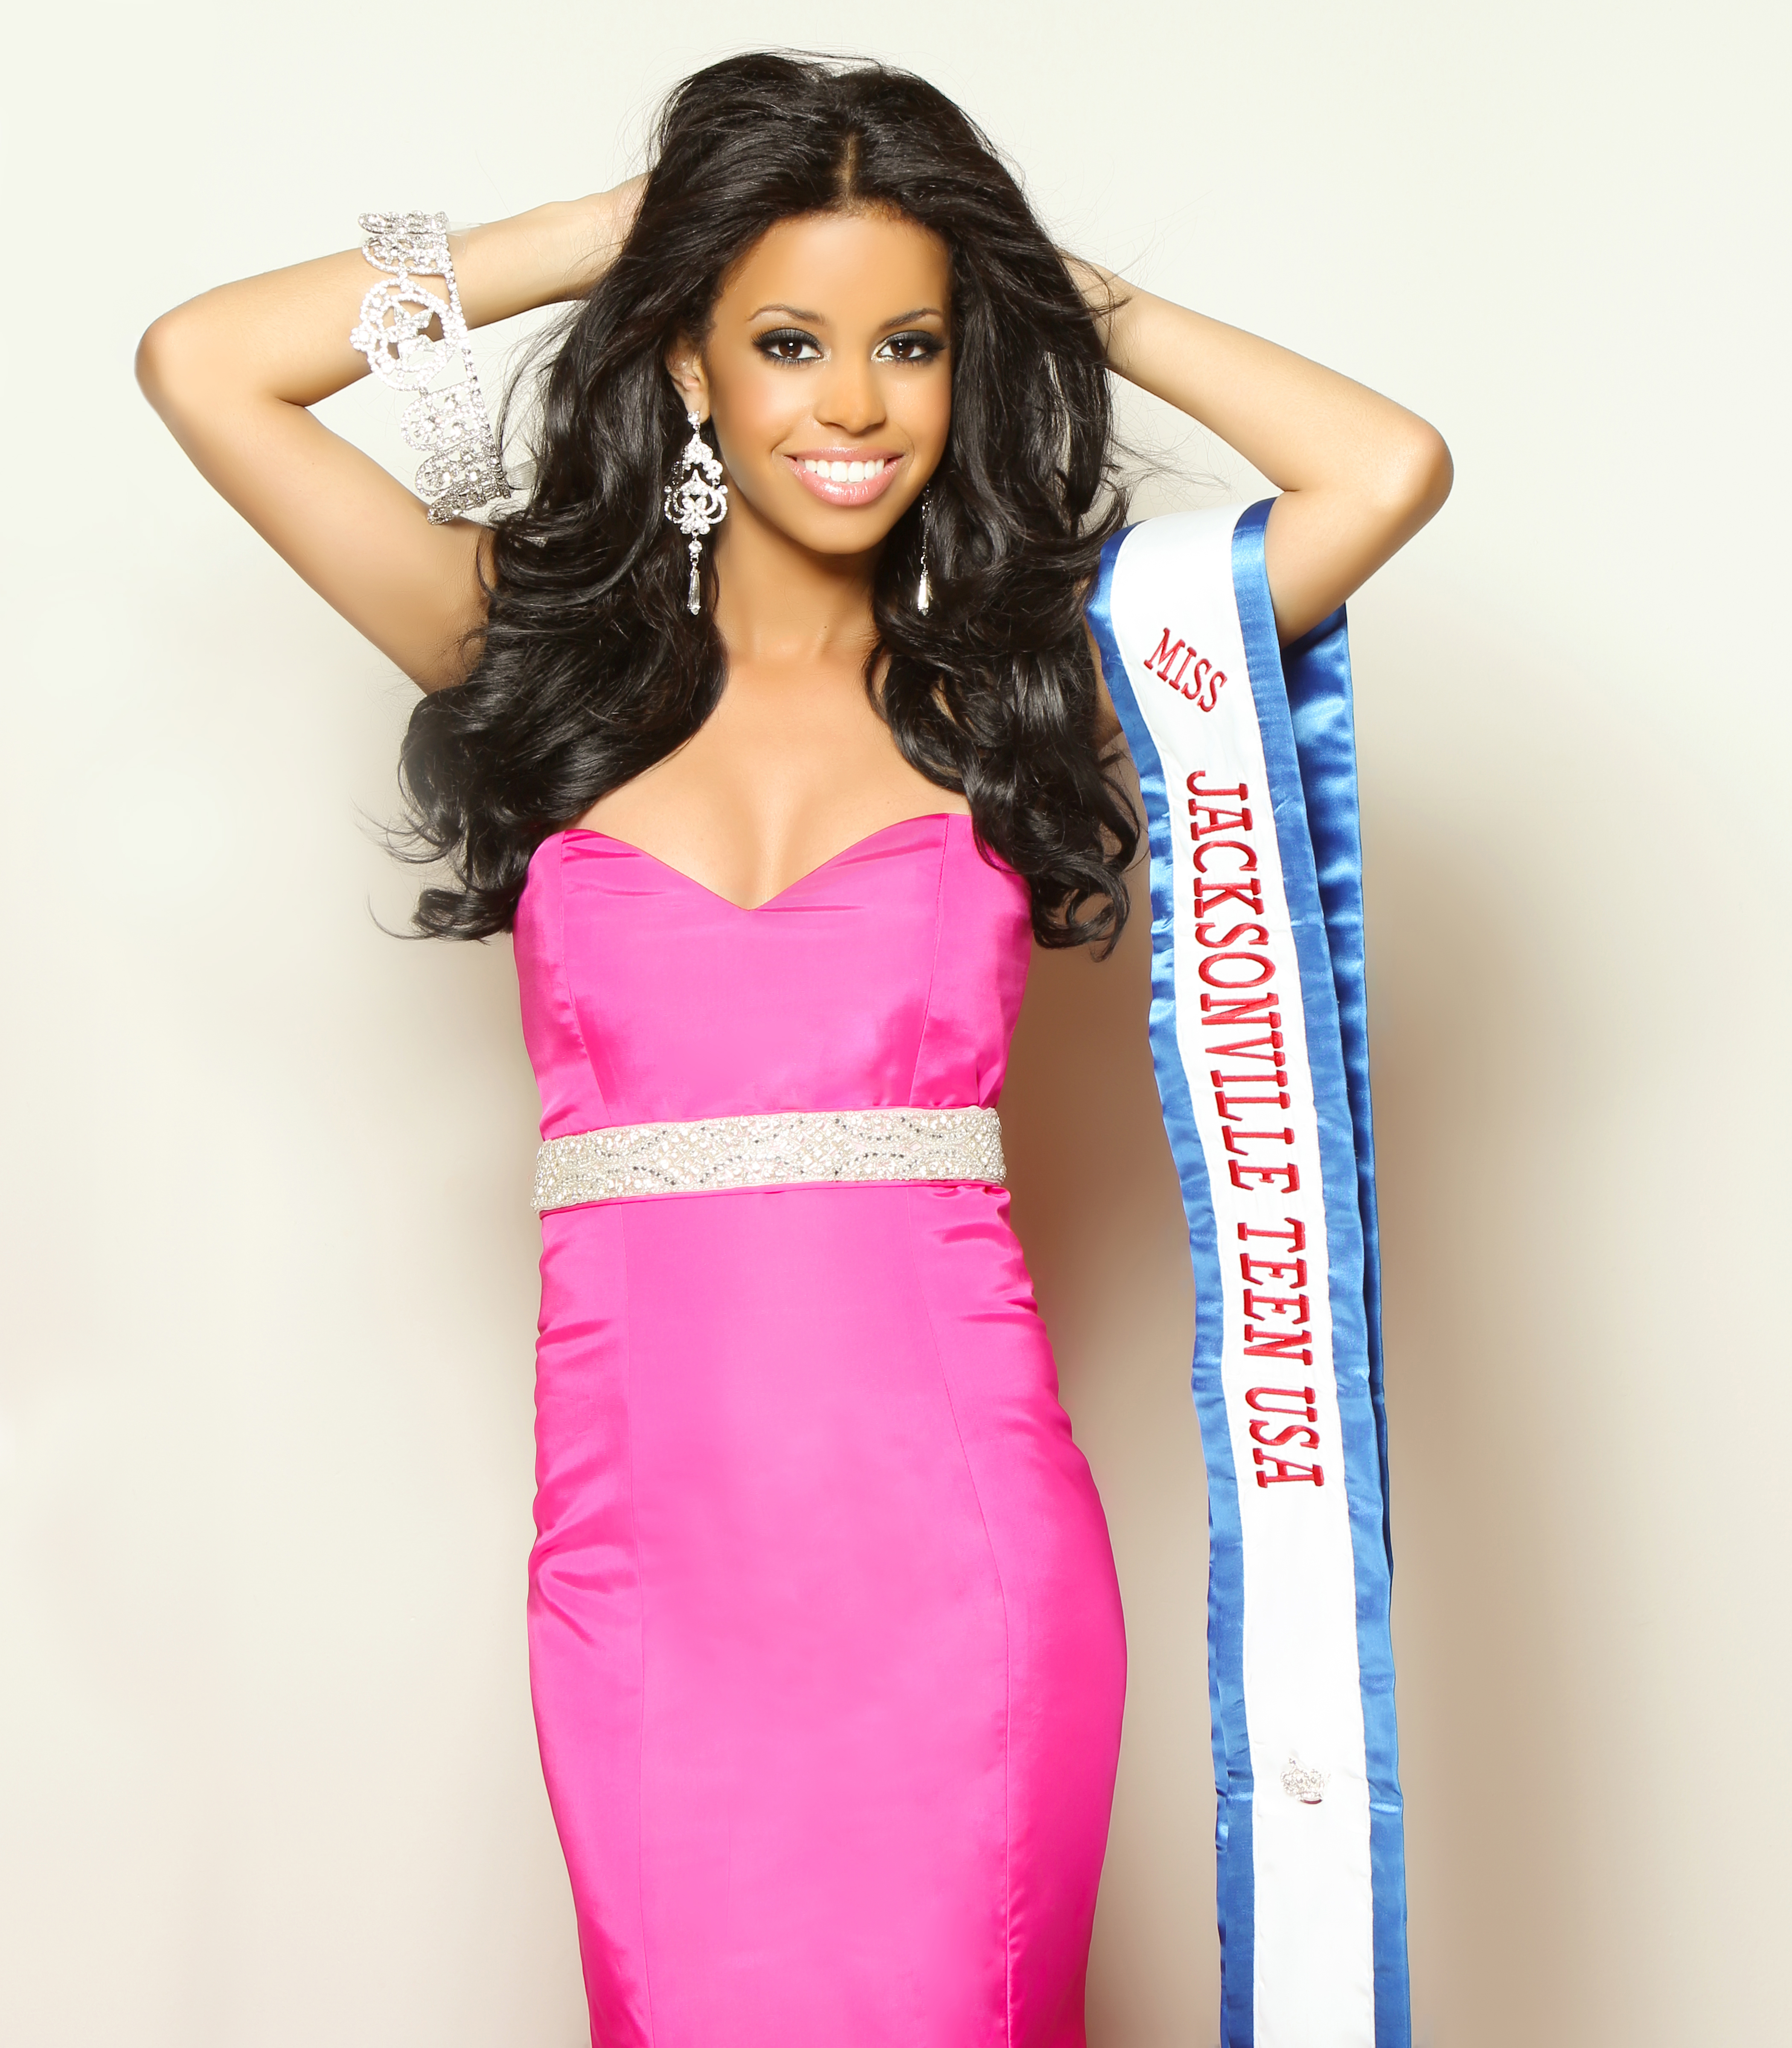 Miss Teen USA Pageant 2014